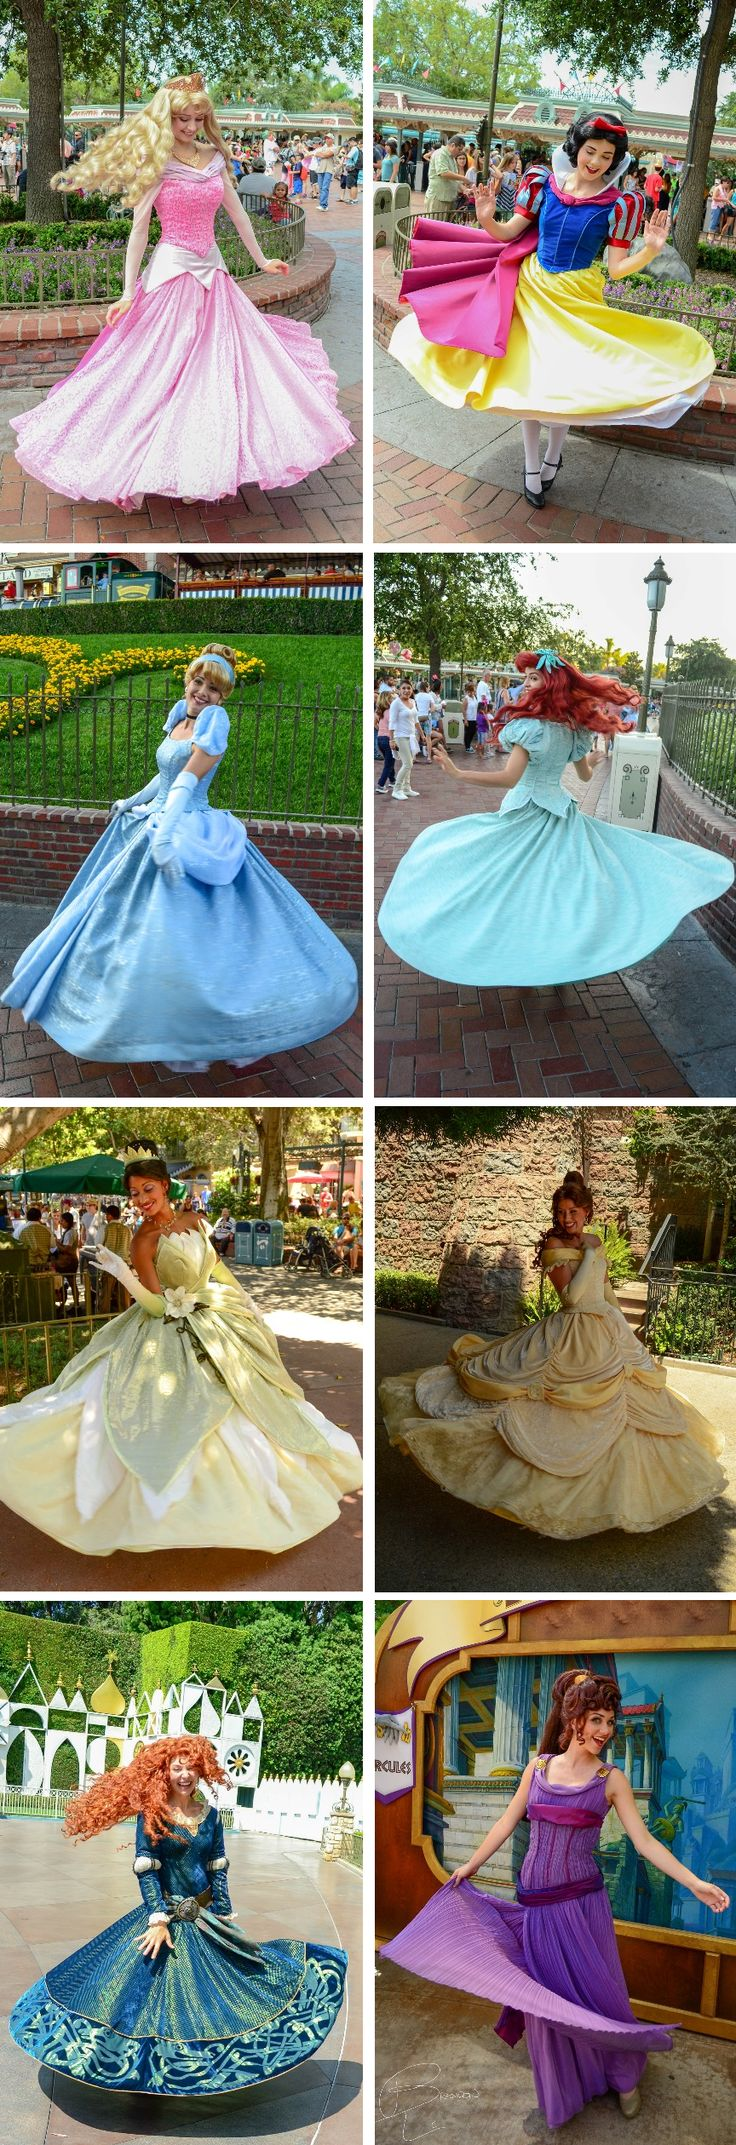 """Can you twirl for us?"" - Aurora, Snow White, Cinderella, Ariel, Tiana, Belle, Merida, & Megra."